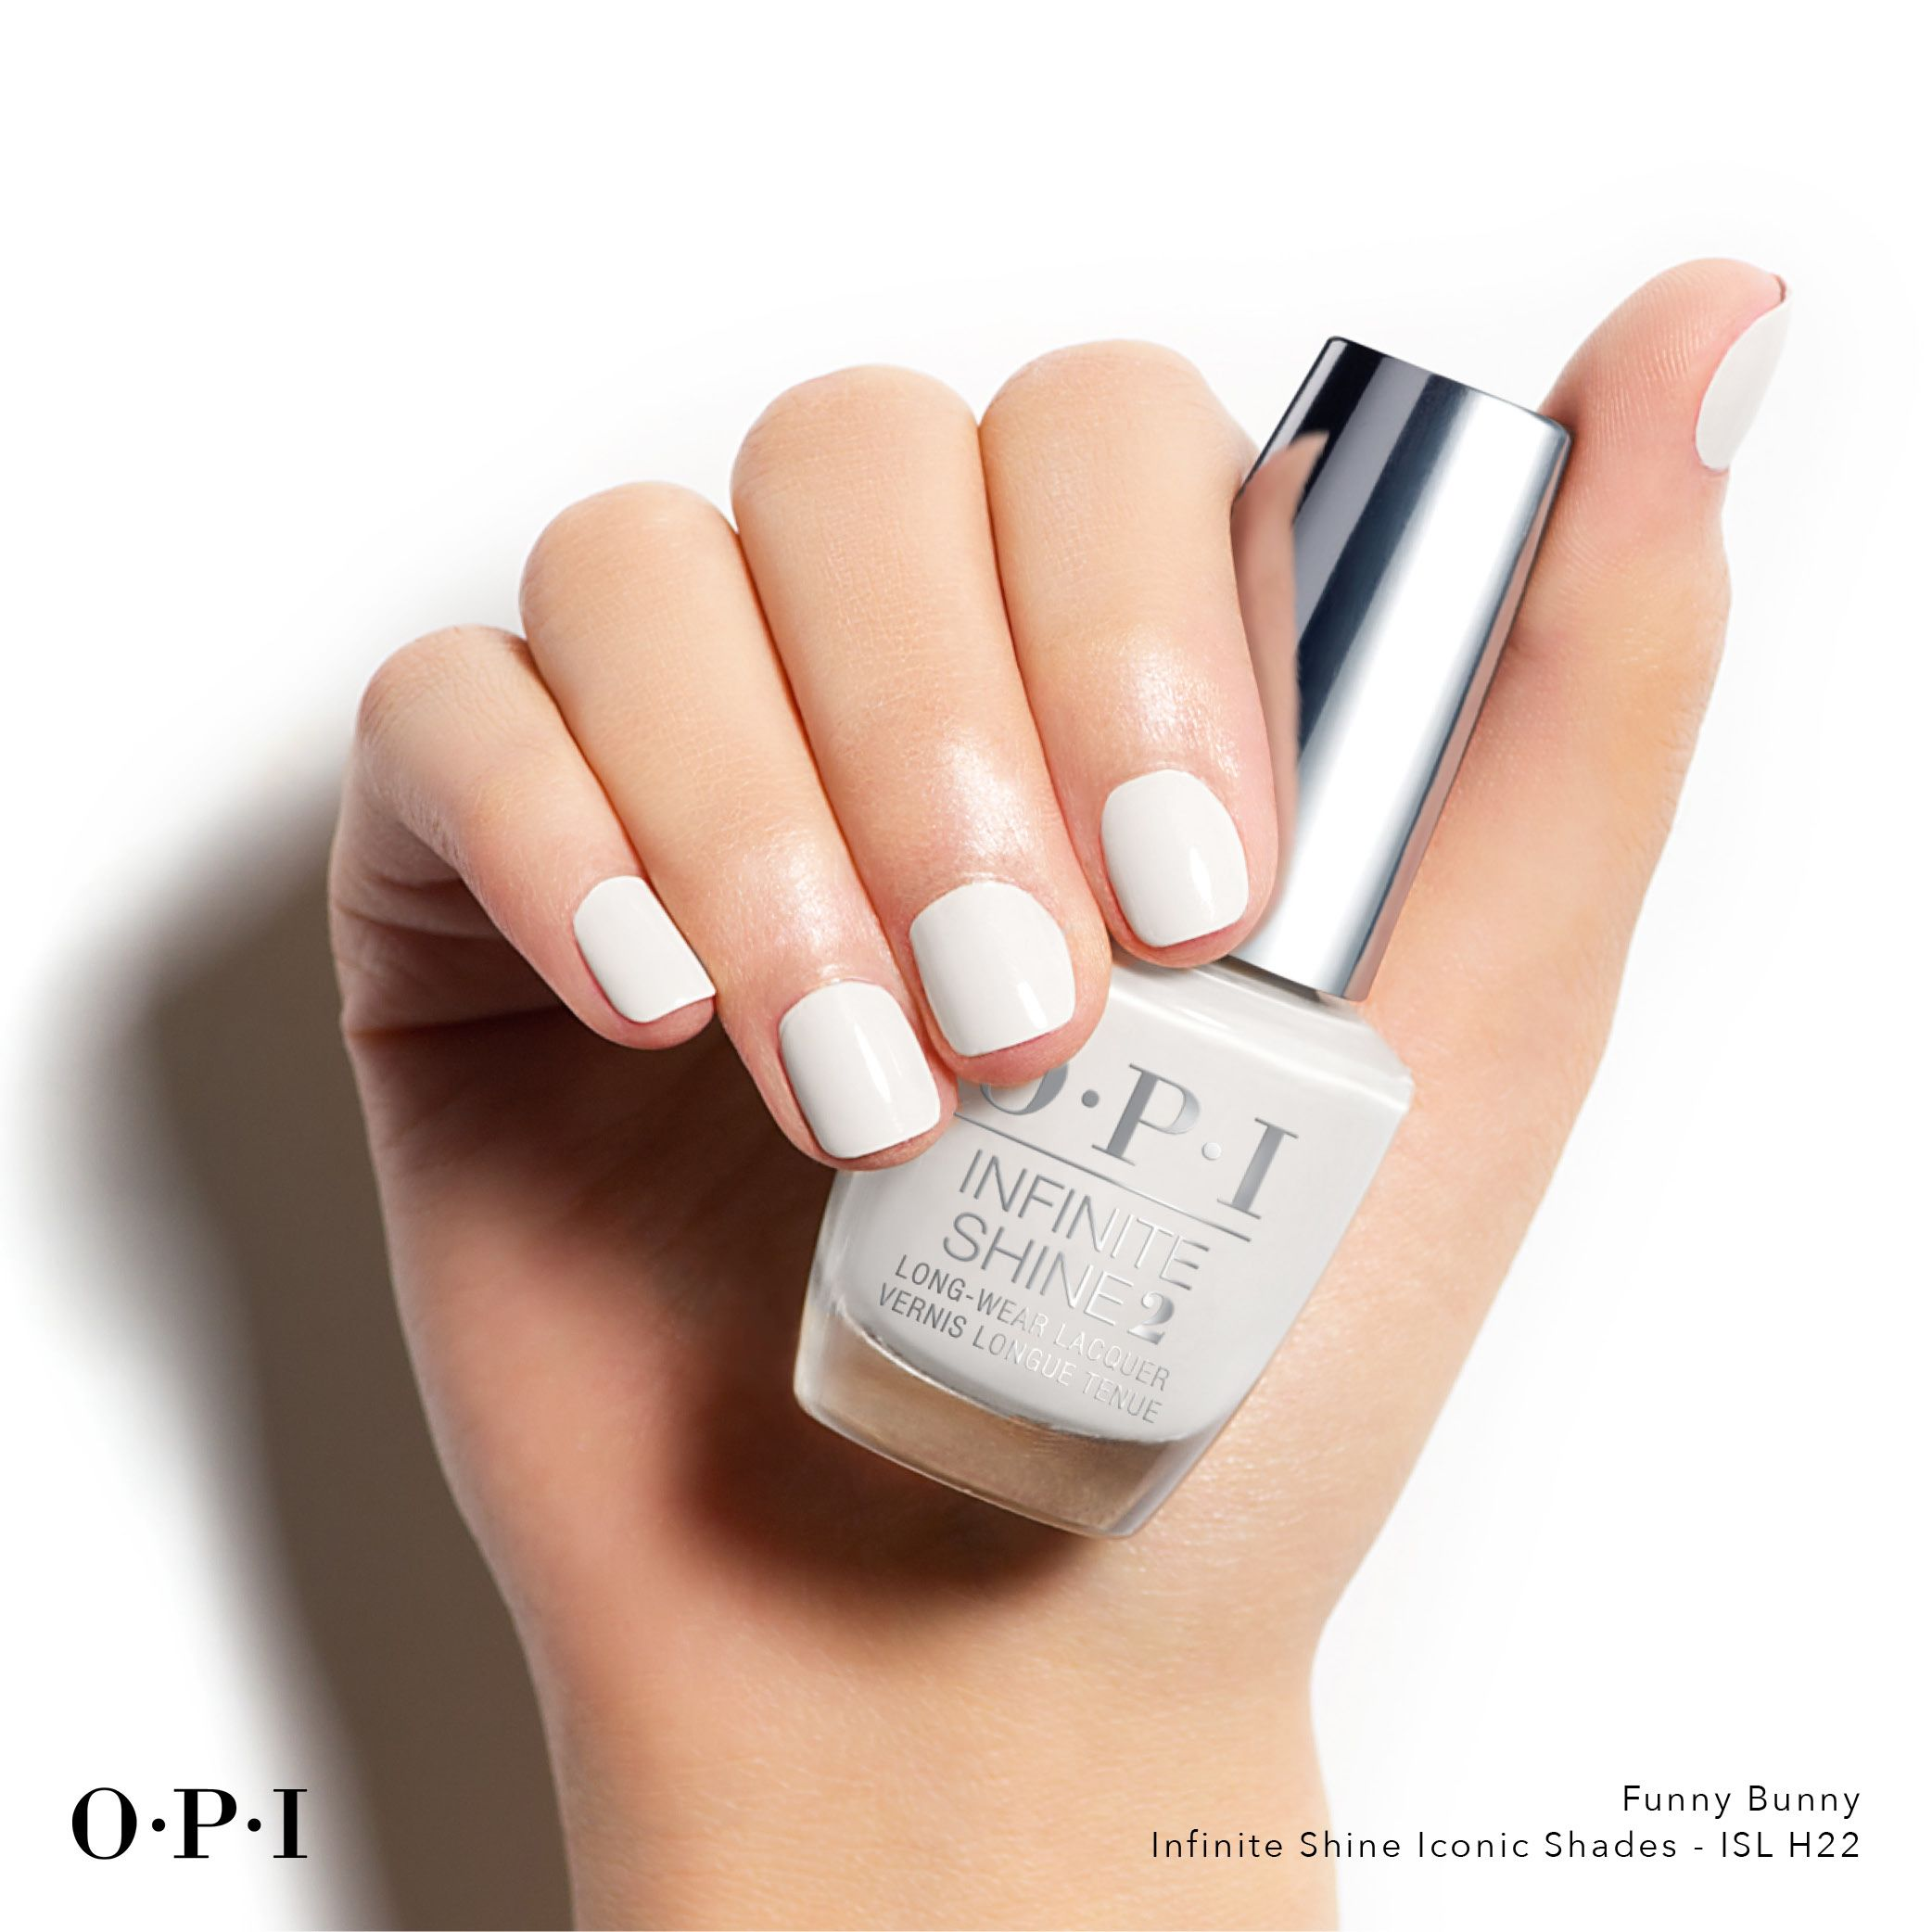 Homepage | Nail care products, OPI and Nails games